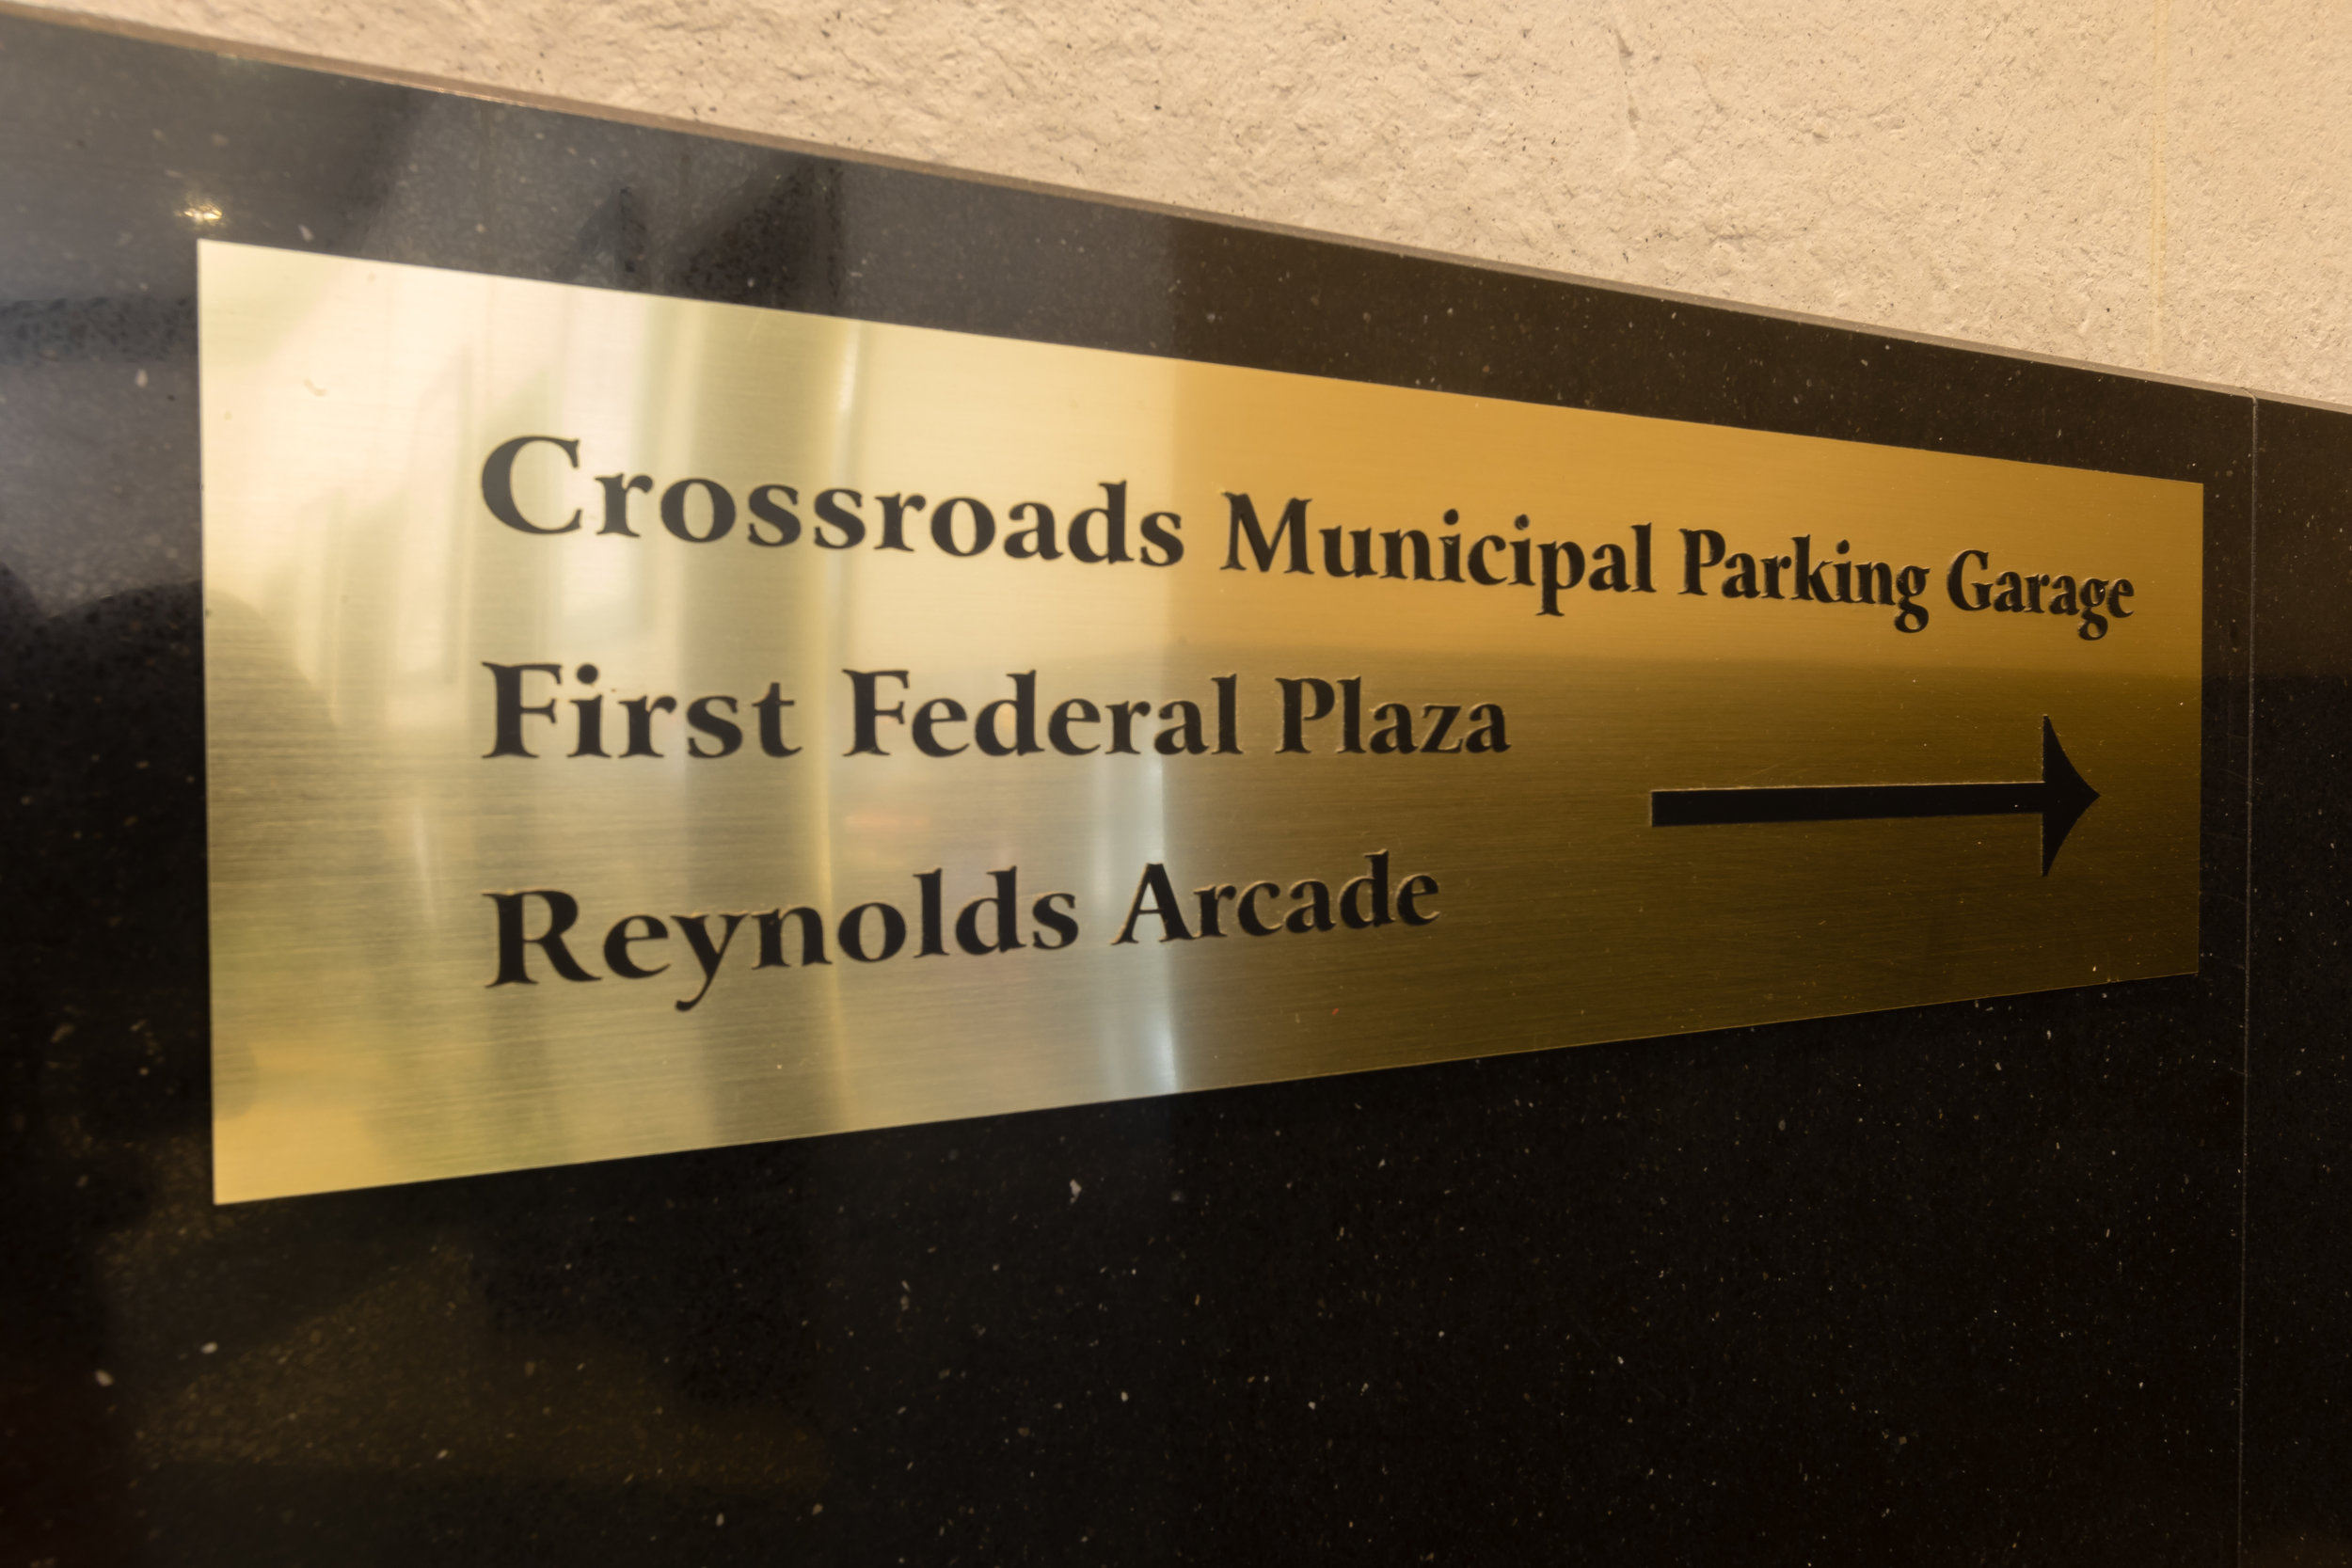 The CrossRoads Building is located on 2 State Street in Rochester, NY.